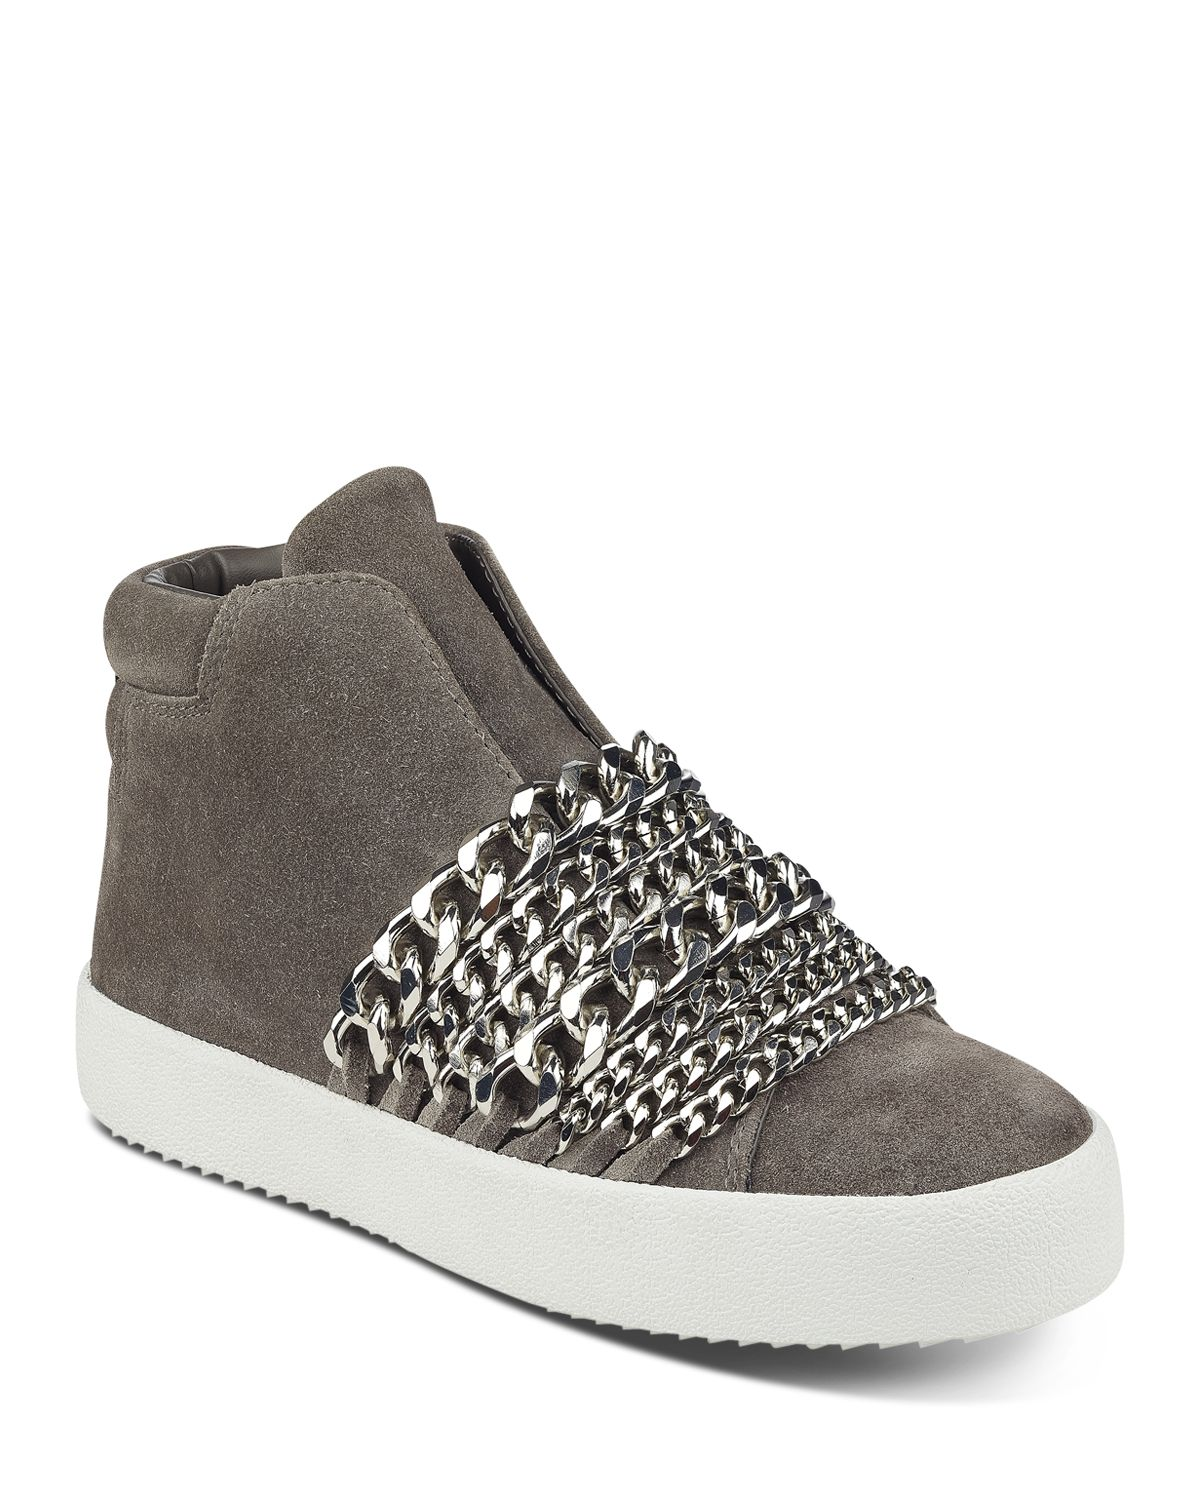 Kendall And Kylie Women's Duke Suede & Chain Trim Sneakers